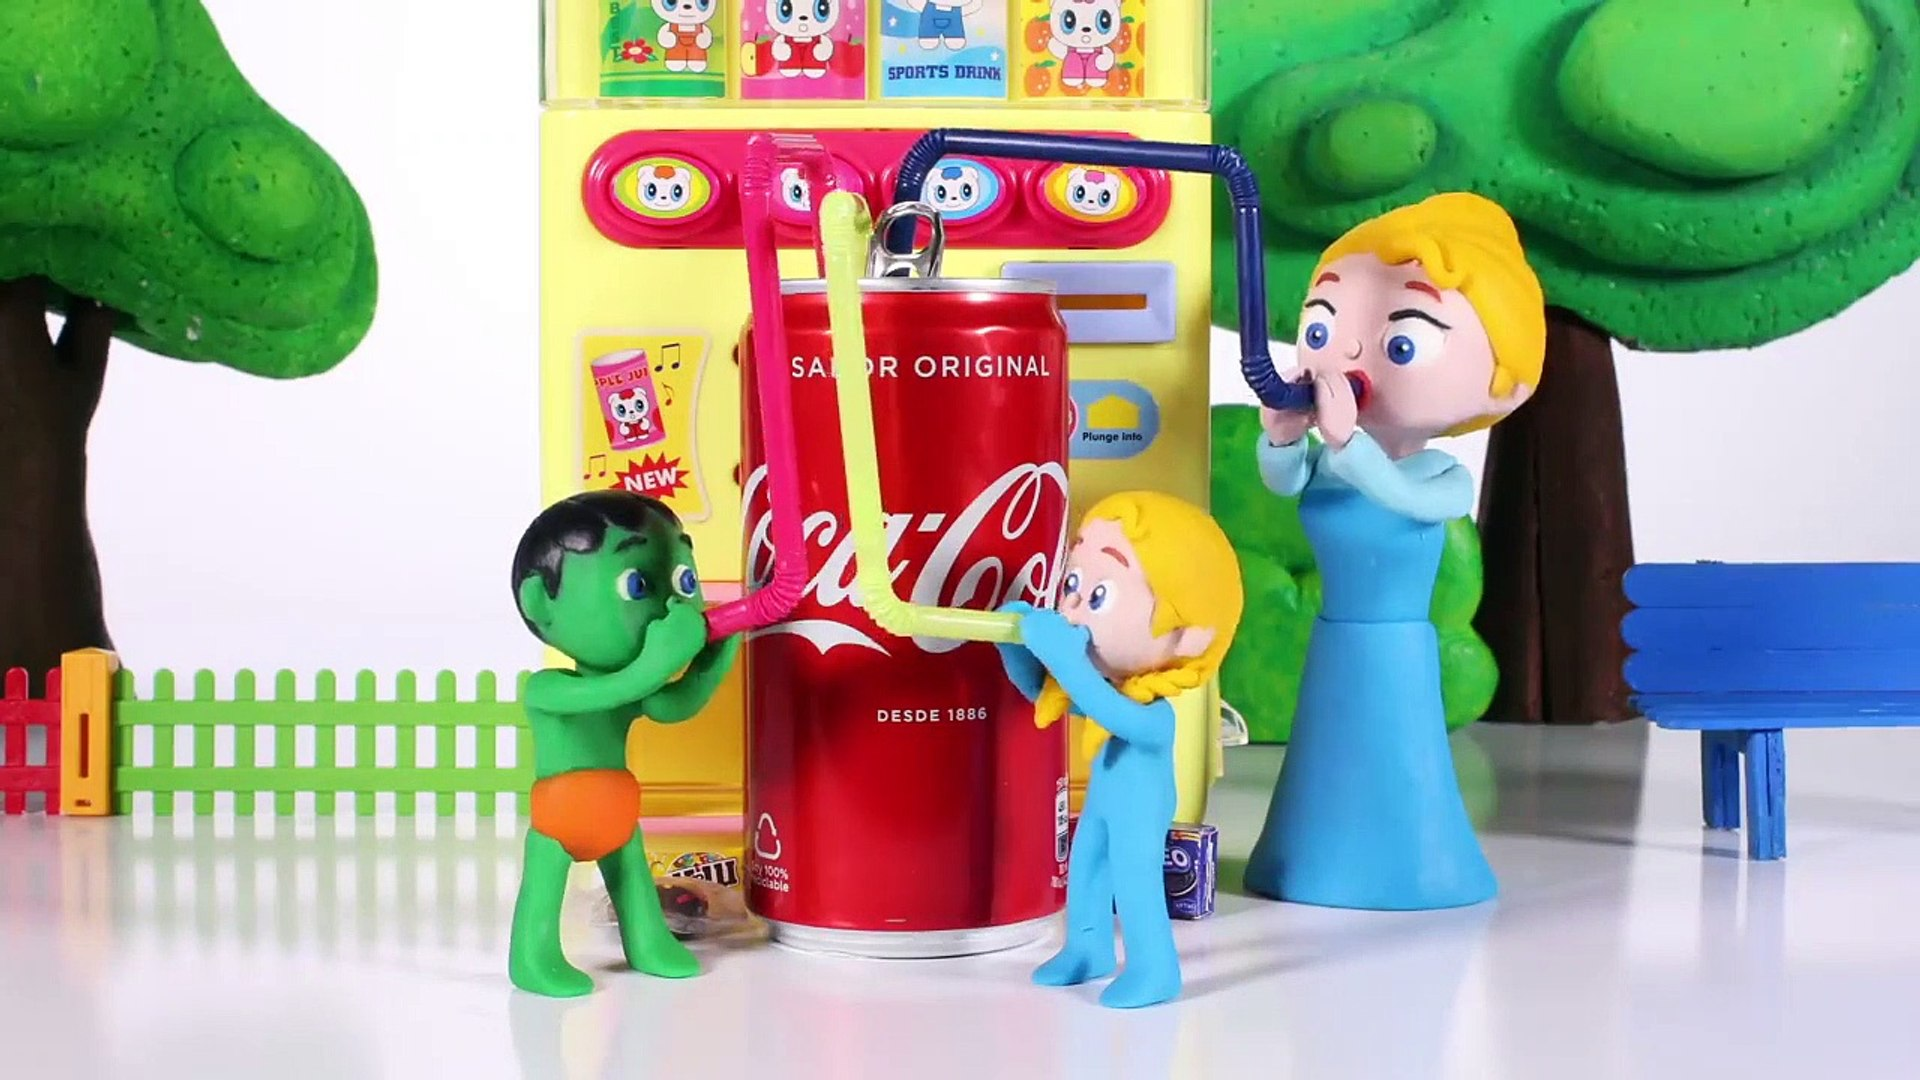 KIDS PLAYING WITH A VENDING MACHINE  PLAY DOH CARTOONS FOR KIDS